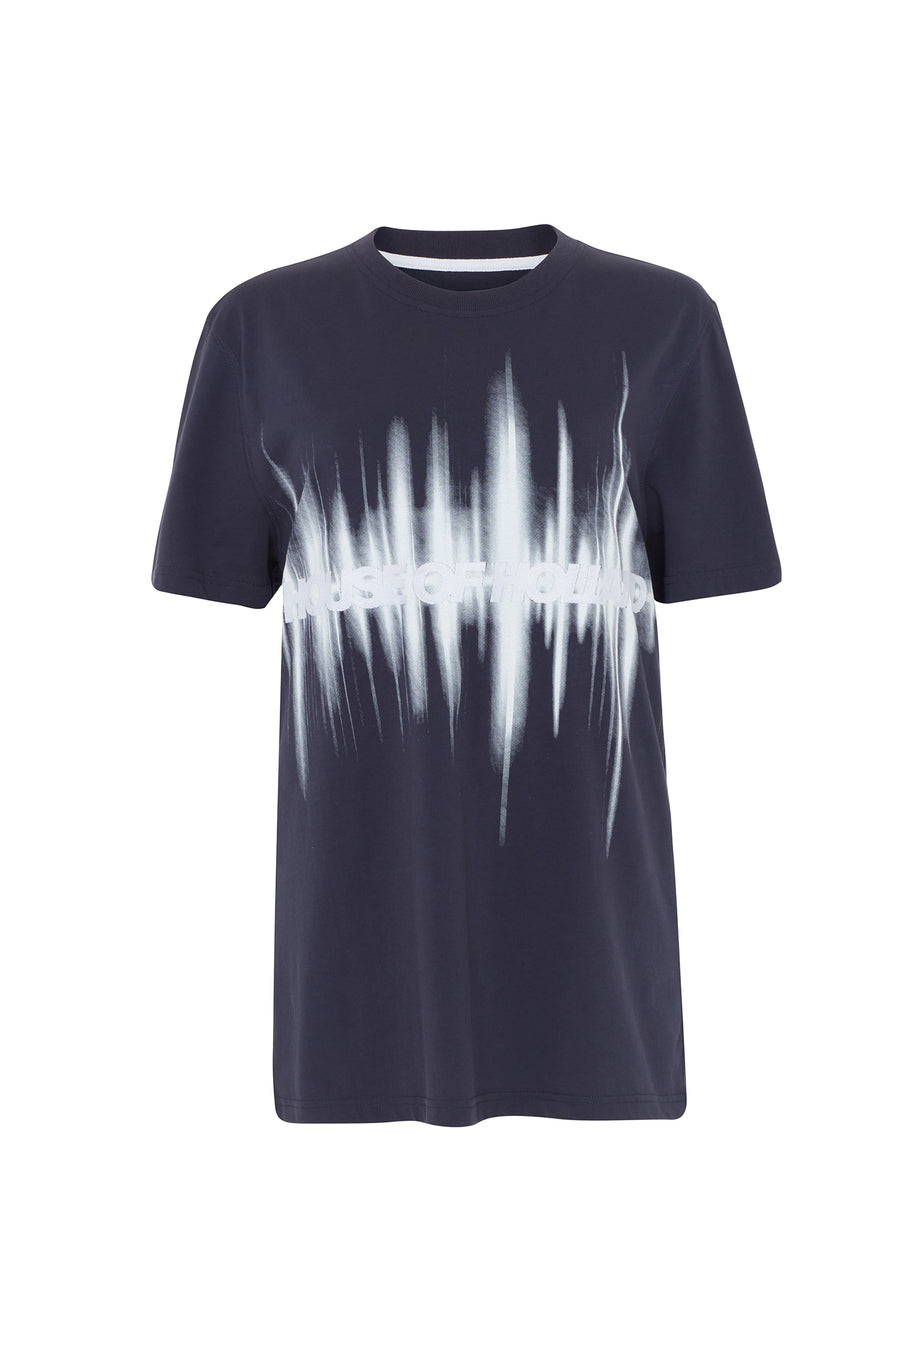 Muted Soundwave Tee